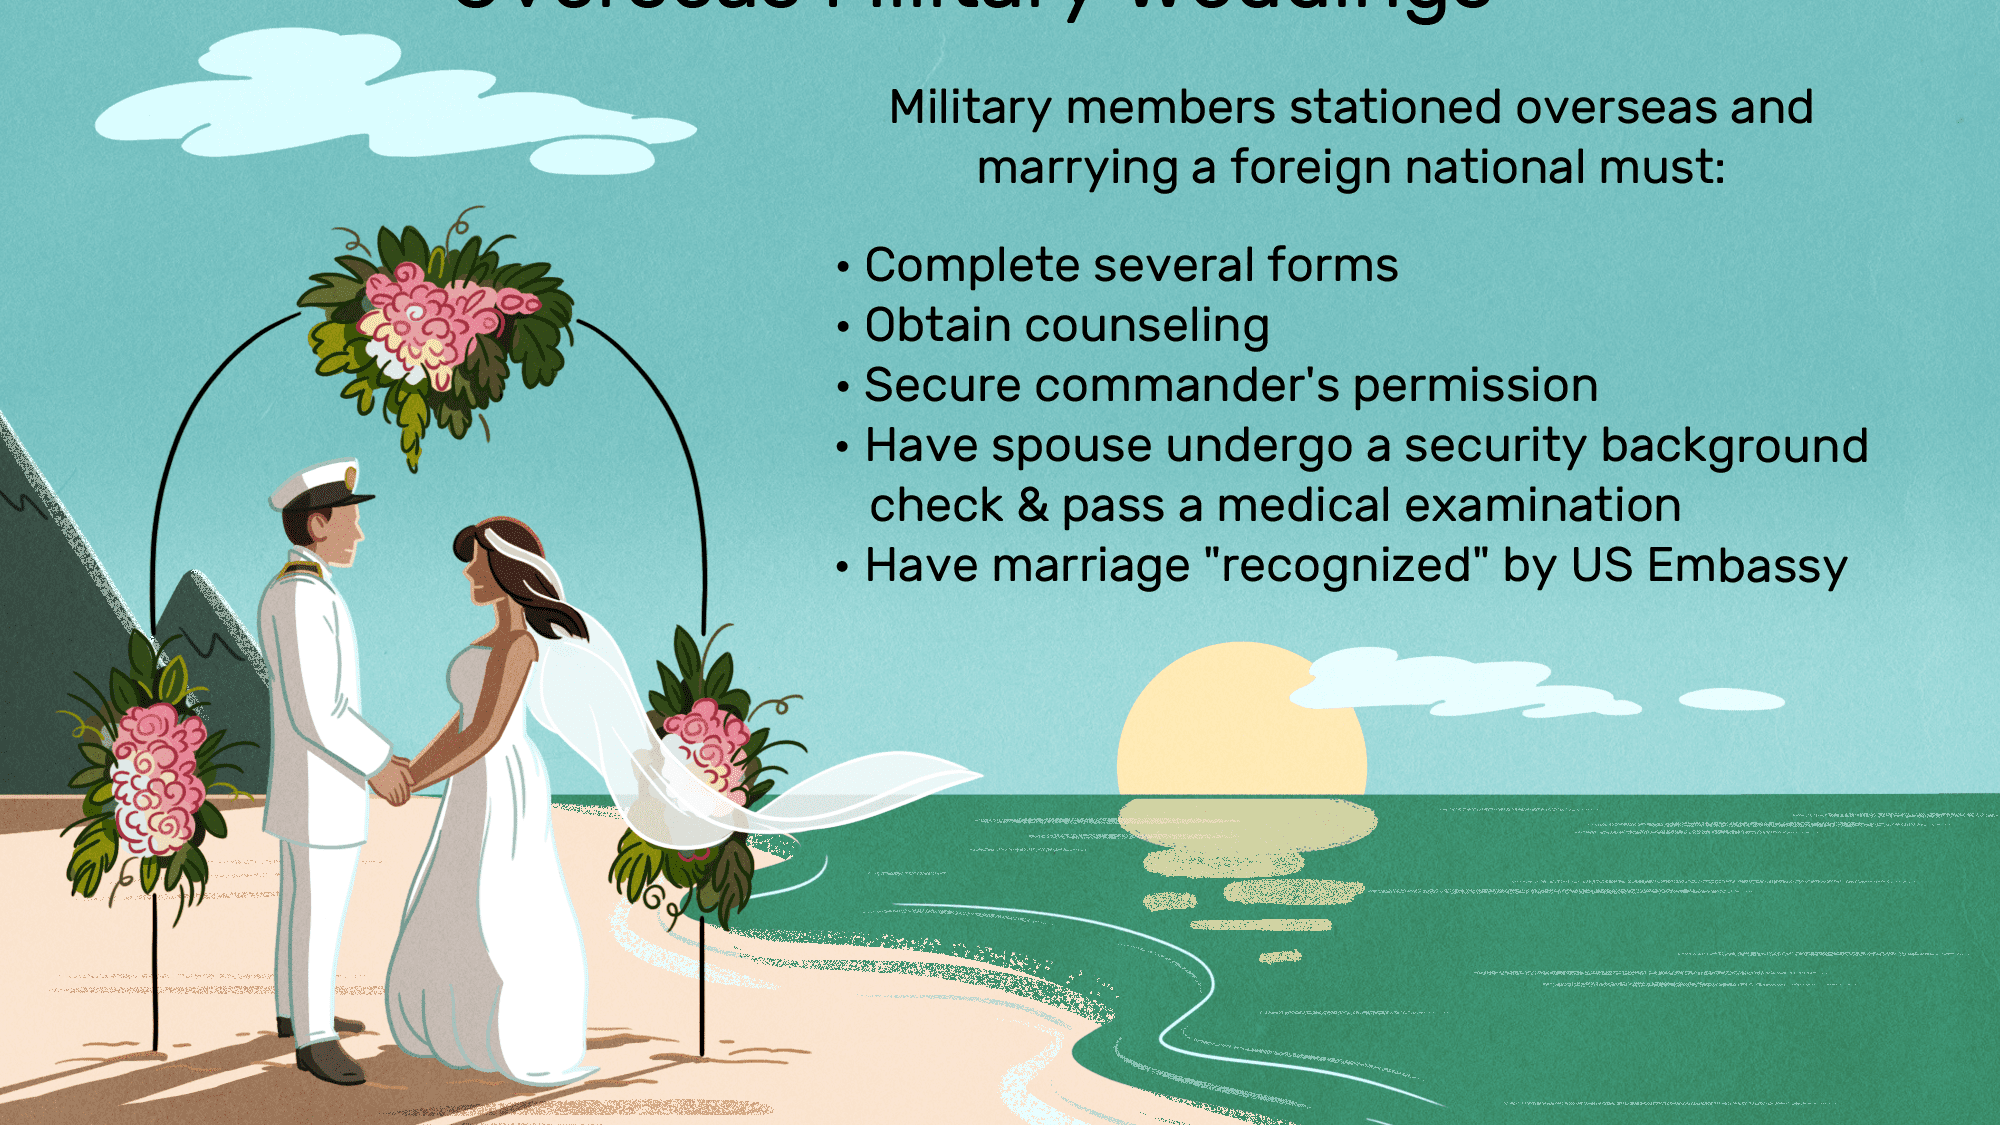 What You Need To Know About Marrying In The Military